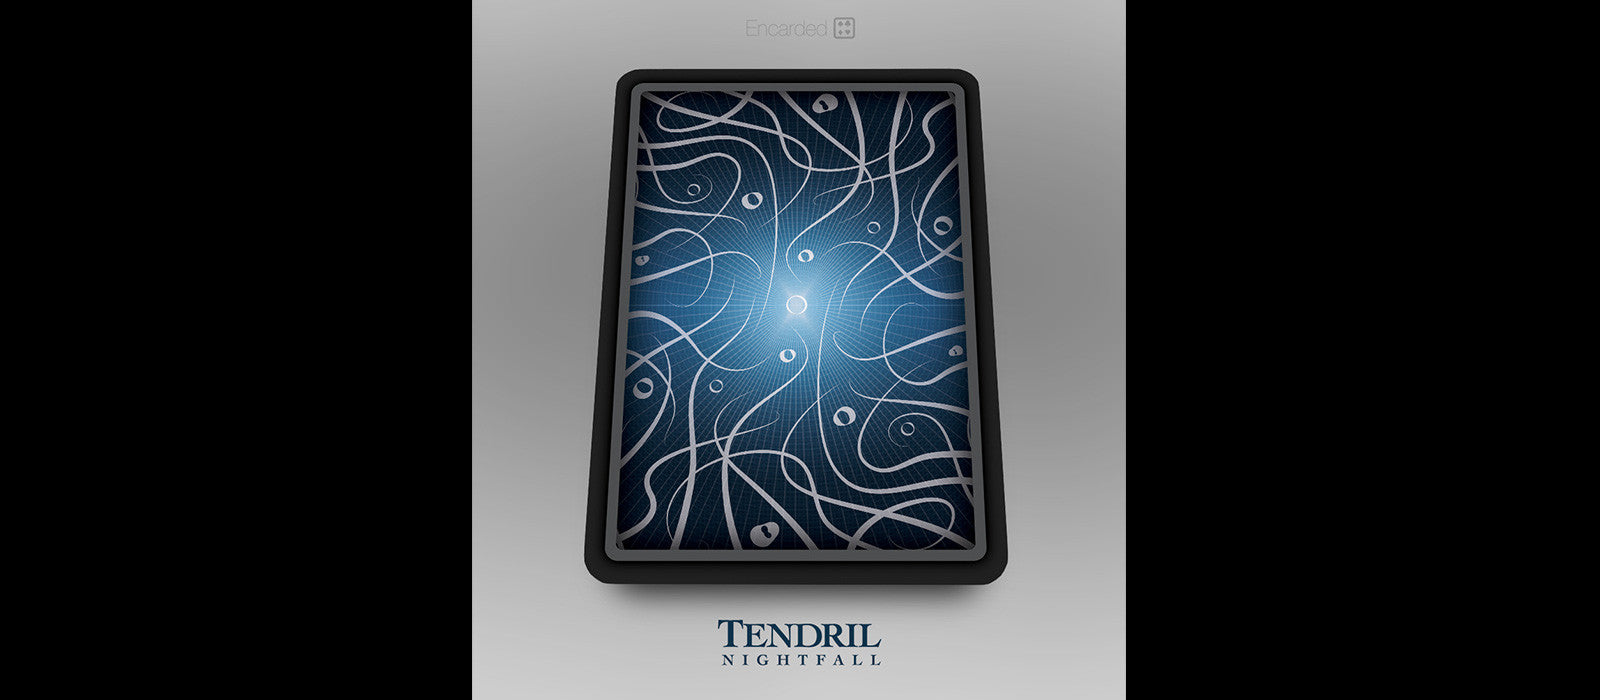 Tendril: Nightfall